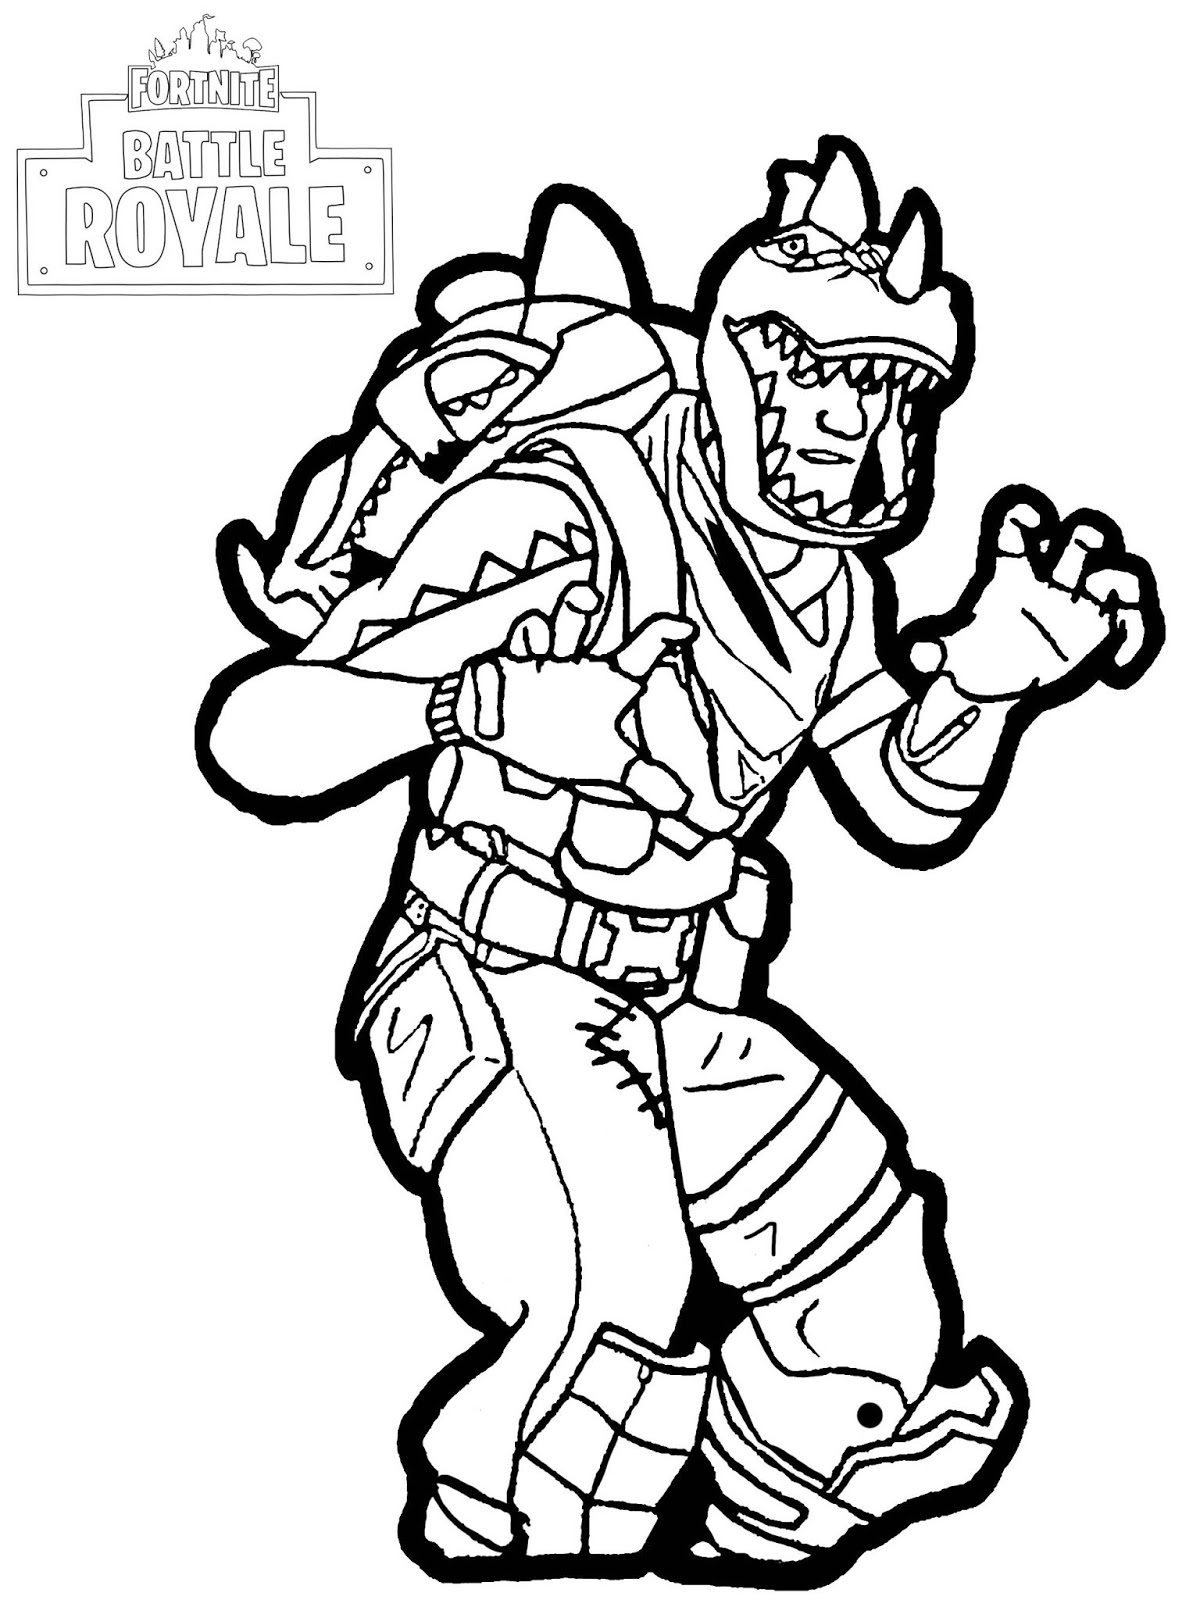 fortnite season 4 coloring pages fortnite skins list in 2020 coloring pages coloring fortnite coloring season pages 4